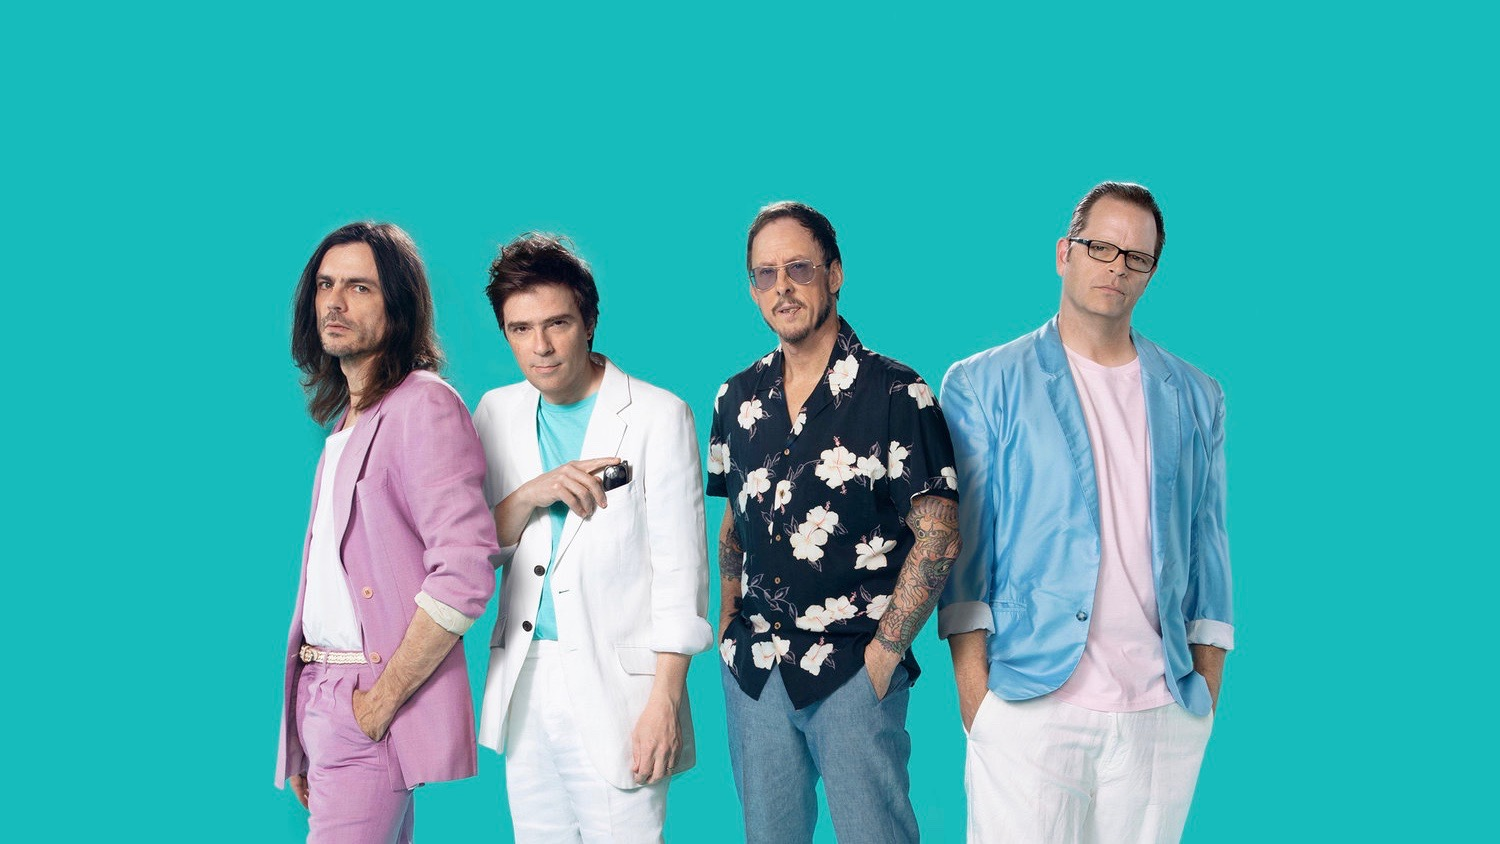 Weezer performs at Apple's WWDC 2019 Bash [Gallery]